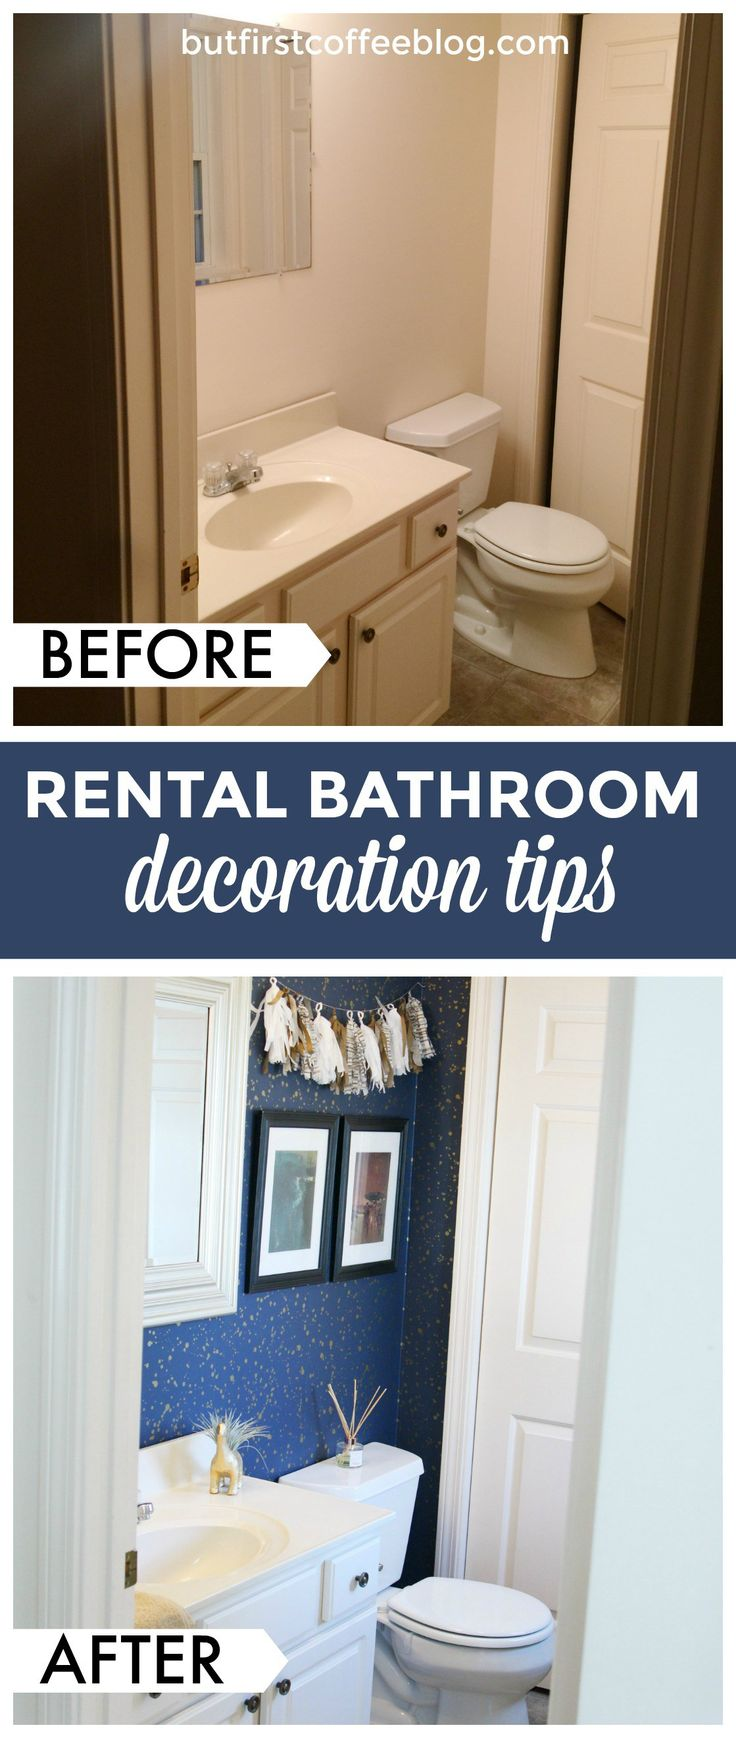 25 best ideas about rental bathroom on pinterest small rental bathroom rental decorating and - Rental home decor pict ...